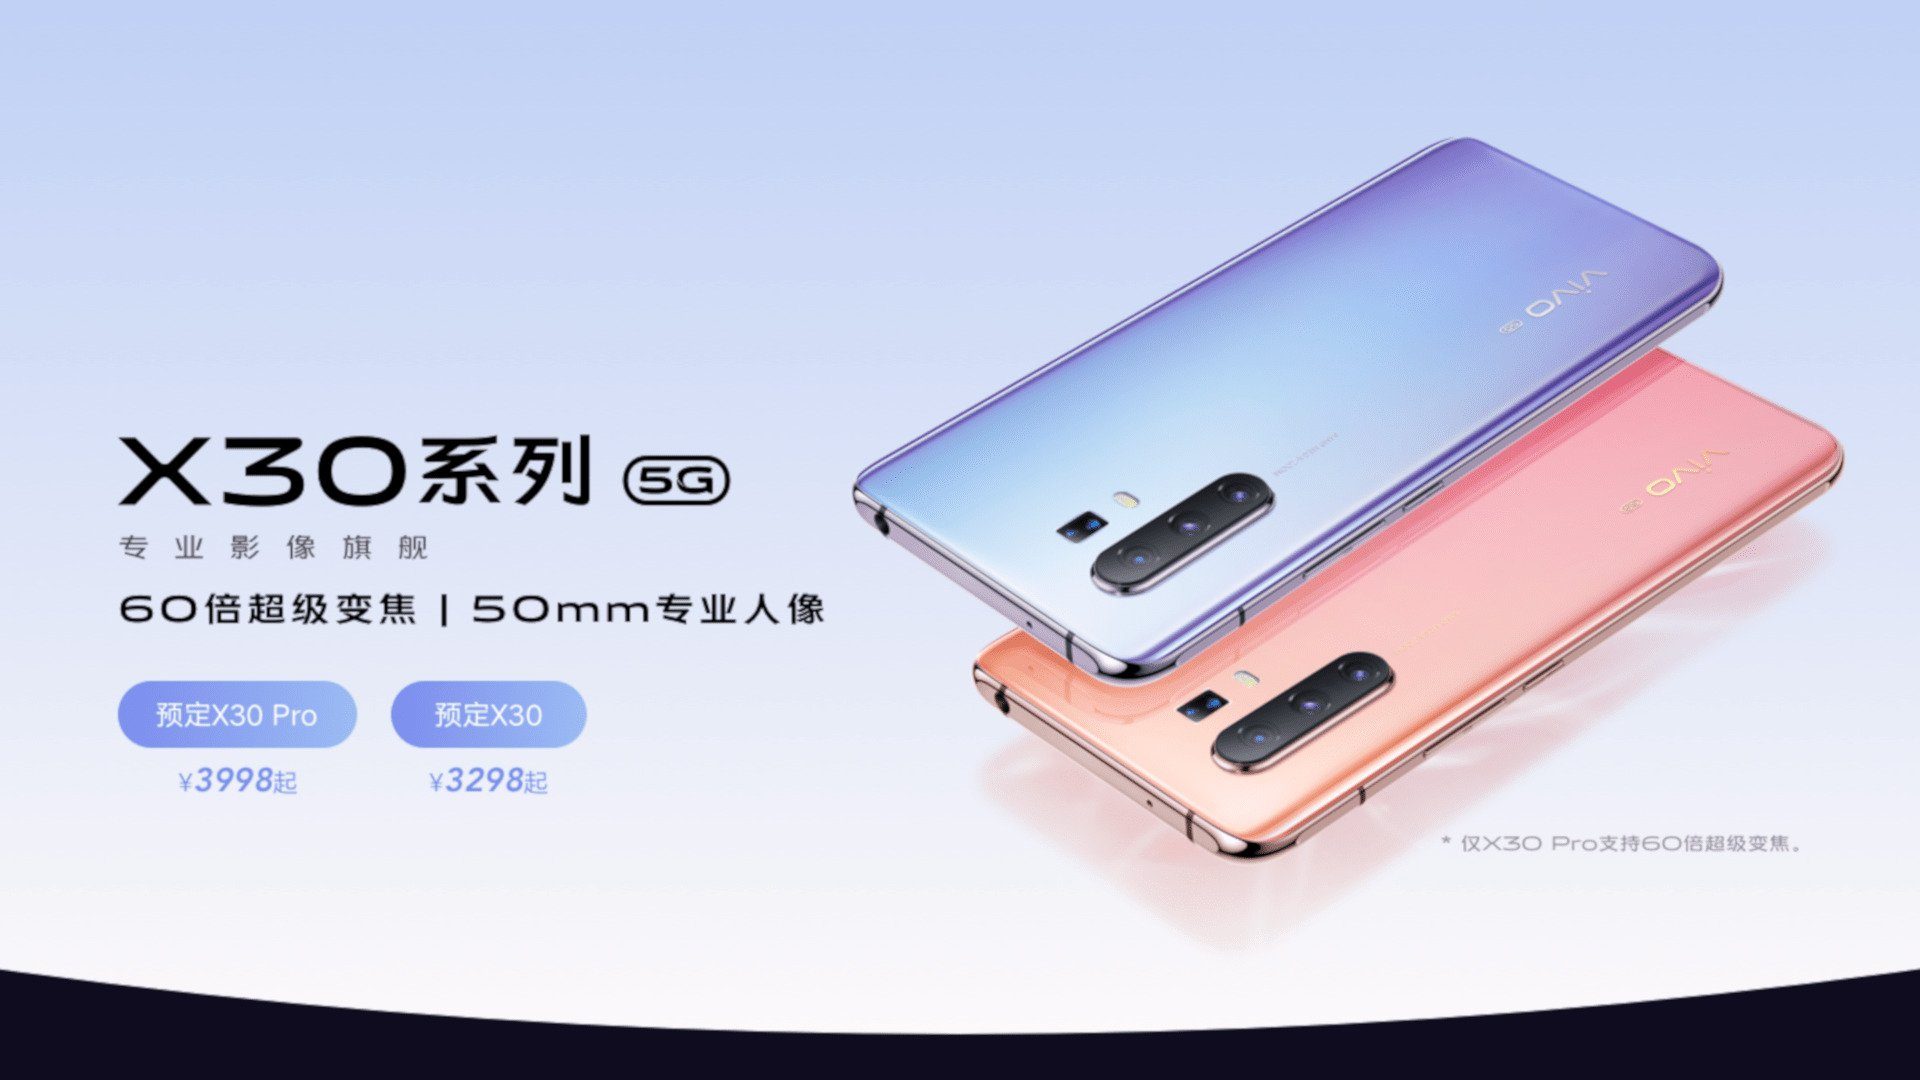 Vivo X30 Pro & Vivo X30 Announcement